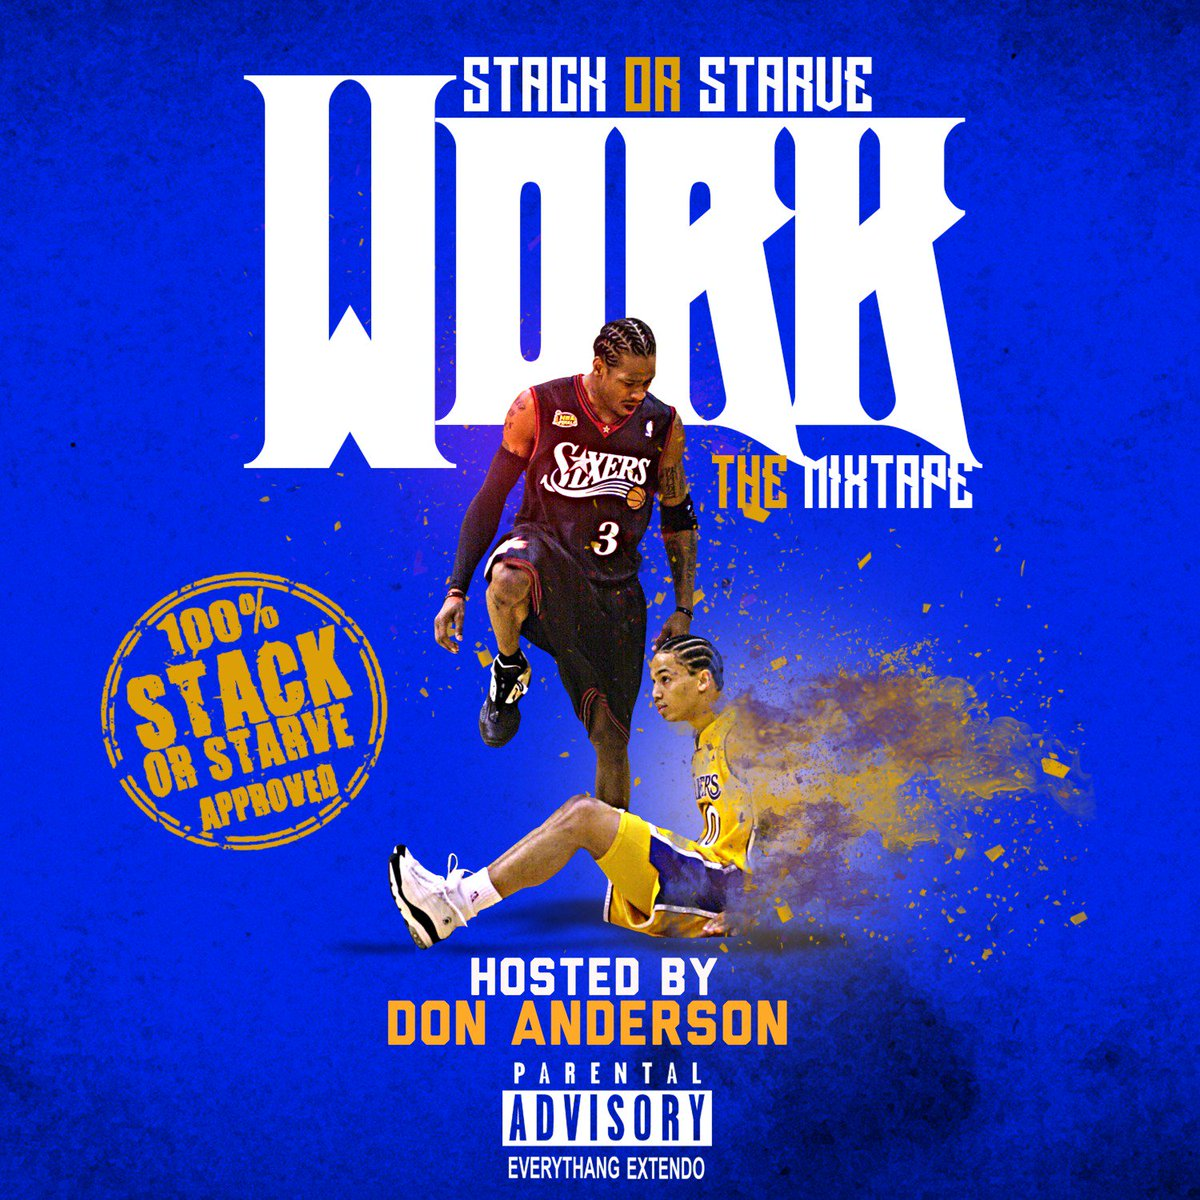 #NewMixtapeAlert #Work drops tomorrow at noon! Stay tuned don't miss this work this shyt epic! Hosted by @StackorStarvDJS @DaDonGED! Coming exclusively to @LiveMixtapes Dont miss this!!!!! #ThaReportDotCom #StackOrStarveApproved #EverythingzWorkin